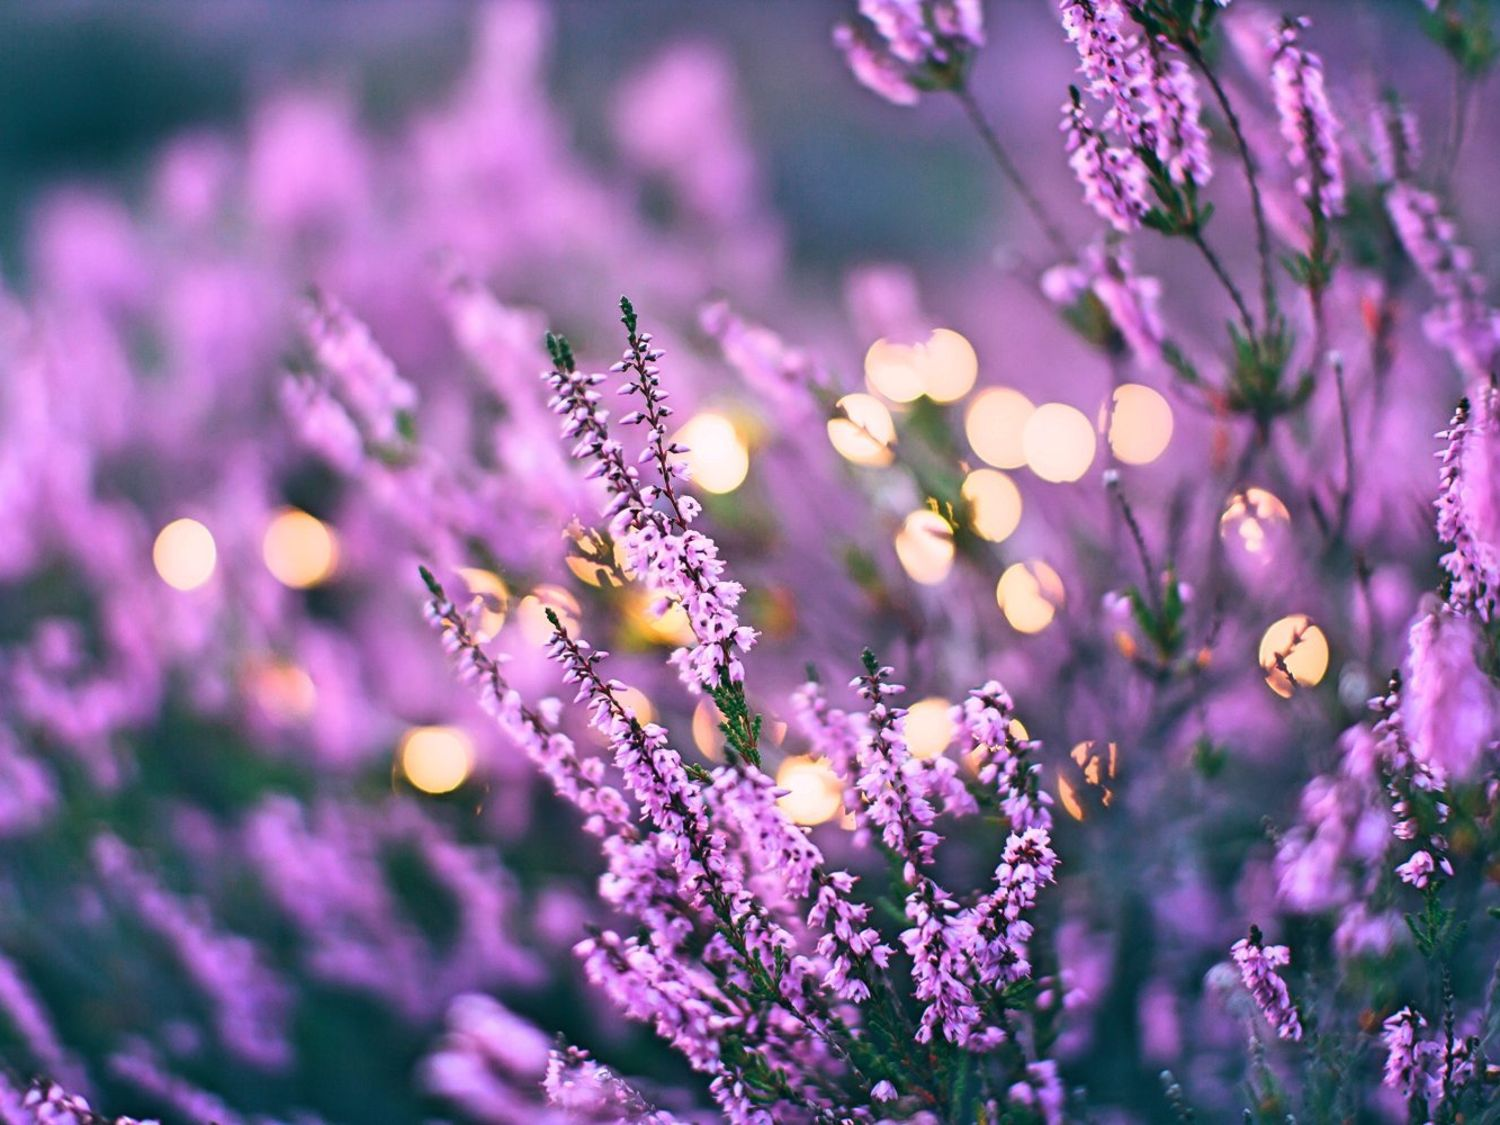 purple flowers and lights representing reiki energy